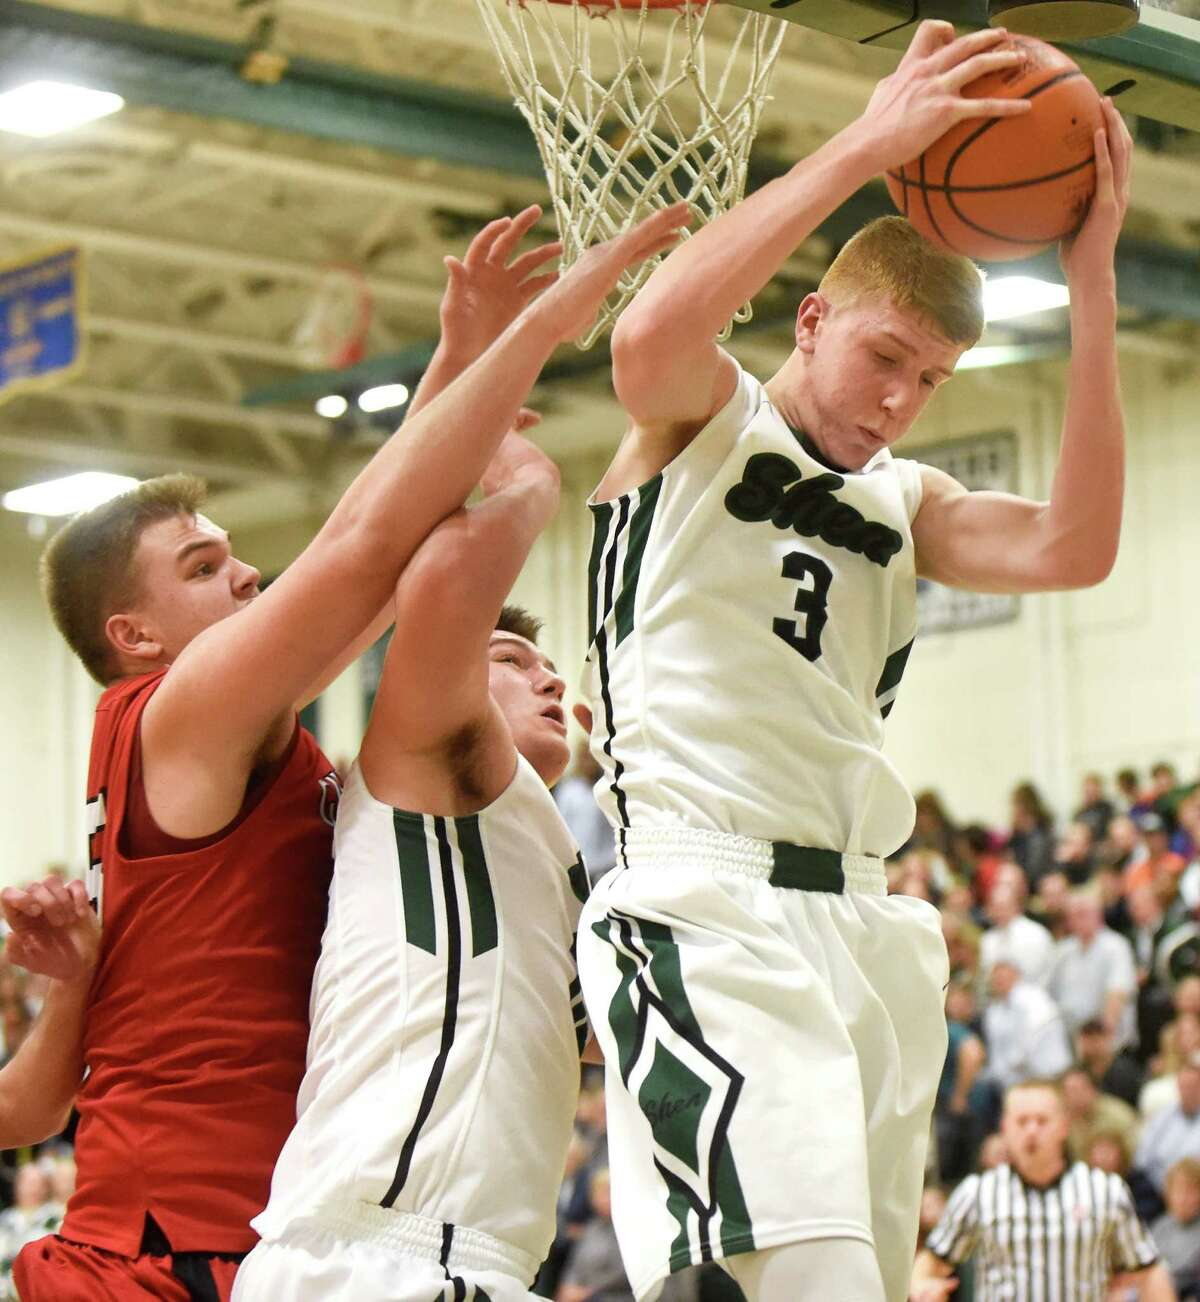 Shen's Kevin Huerter, right, wins the rebound over teammate Mike Pizziketti, center, and Guilderland's Andrew Sischo during their basketball game on Friday, Dec. 11, 2015, at Shenendehowa High in Clifton Park, N.Y. (Cindy Schultz / Times Union)